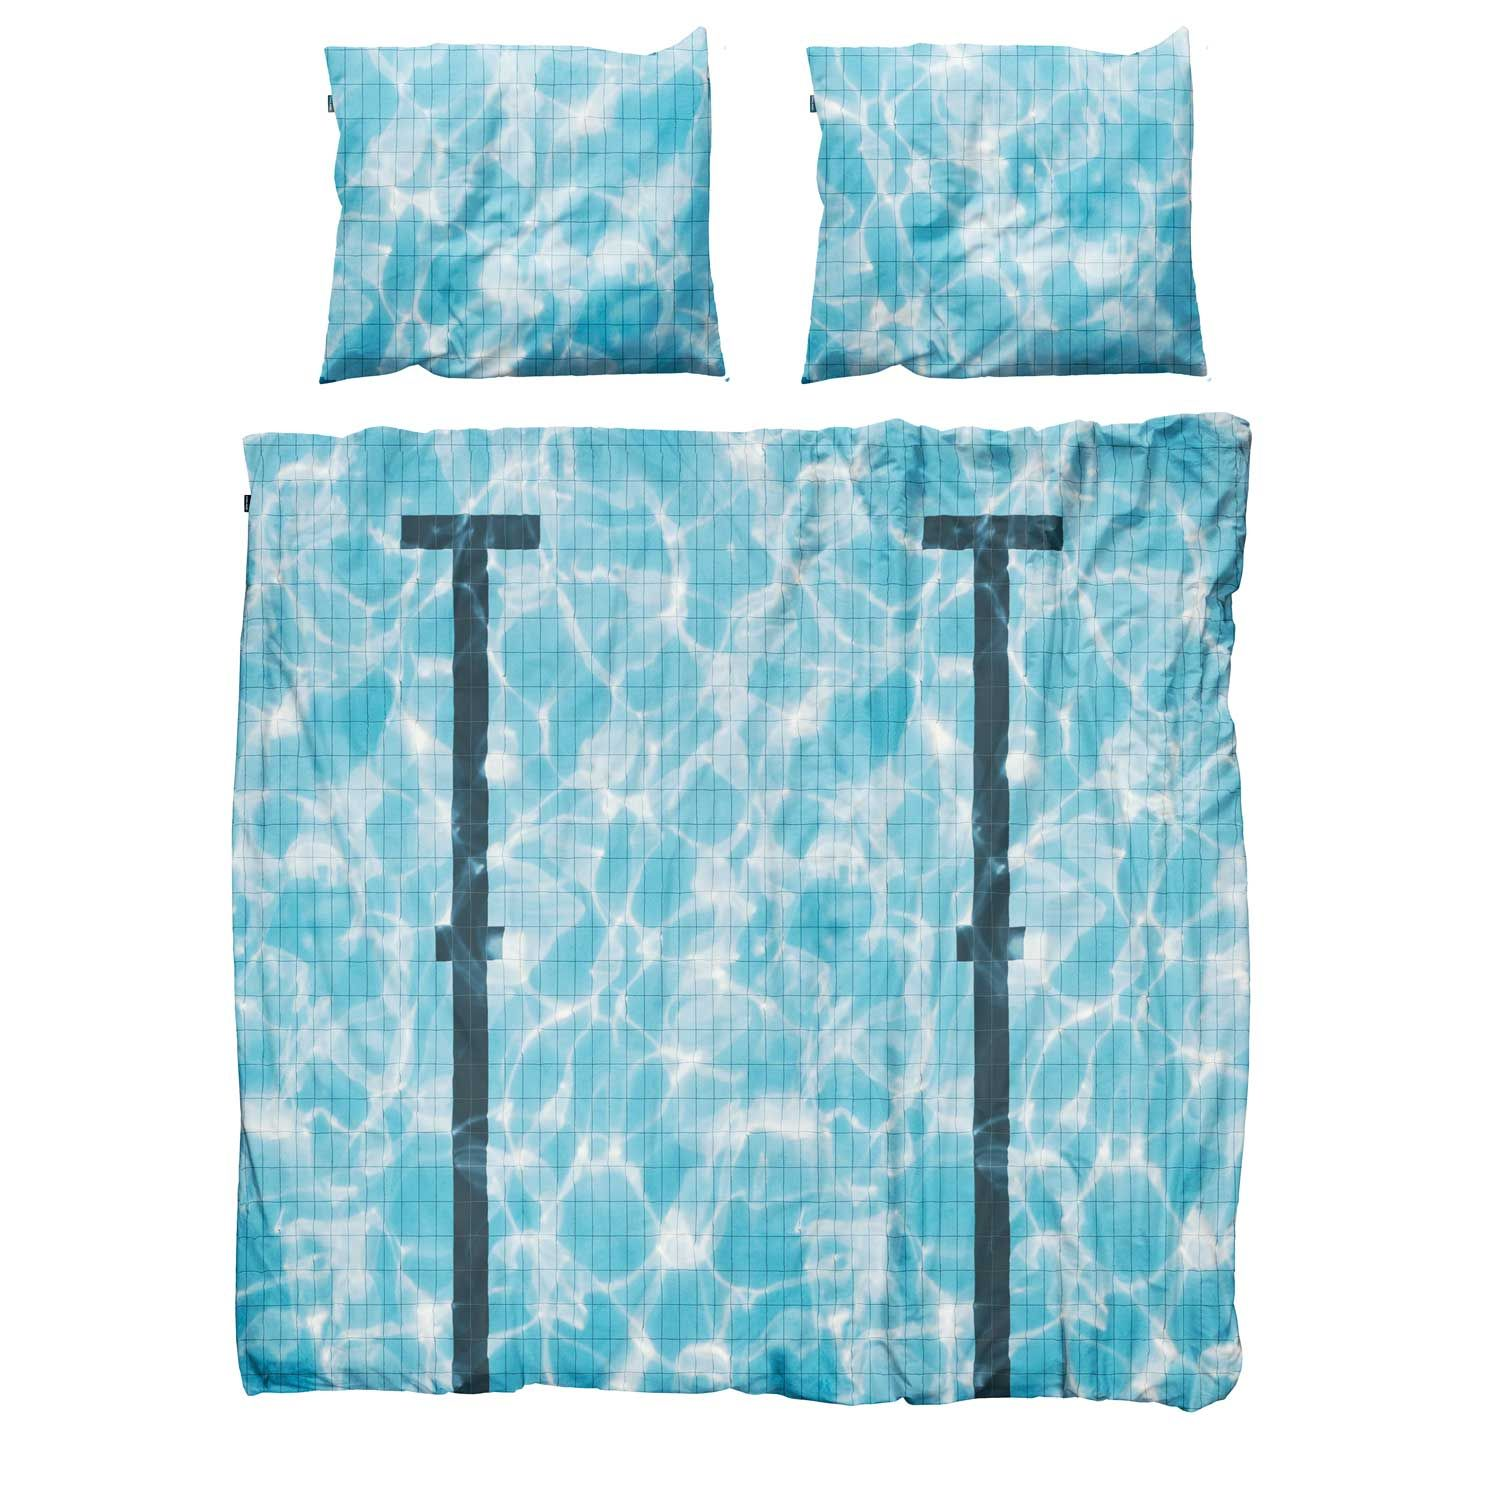 swimming pool bedding! | my everyday | Pinterest | Pool bed and ...